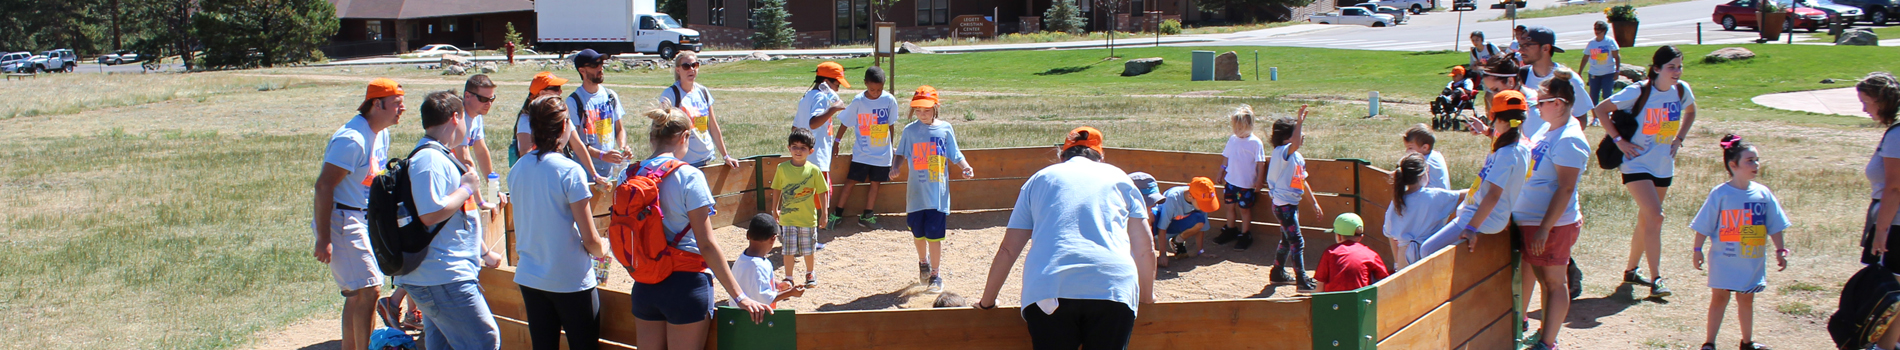 A group of children and adults play in a sandbox